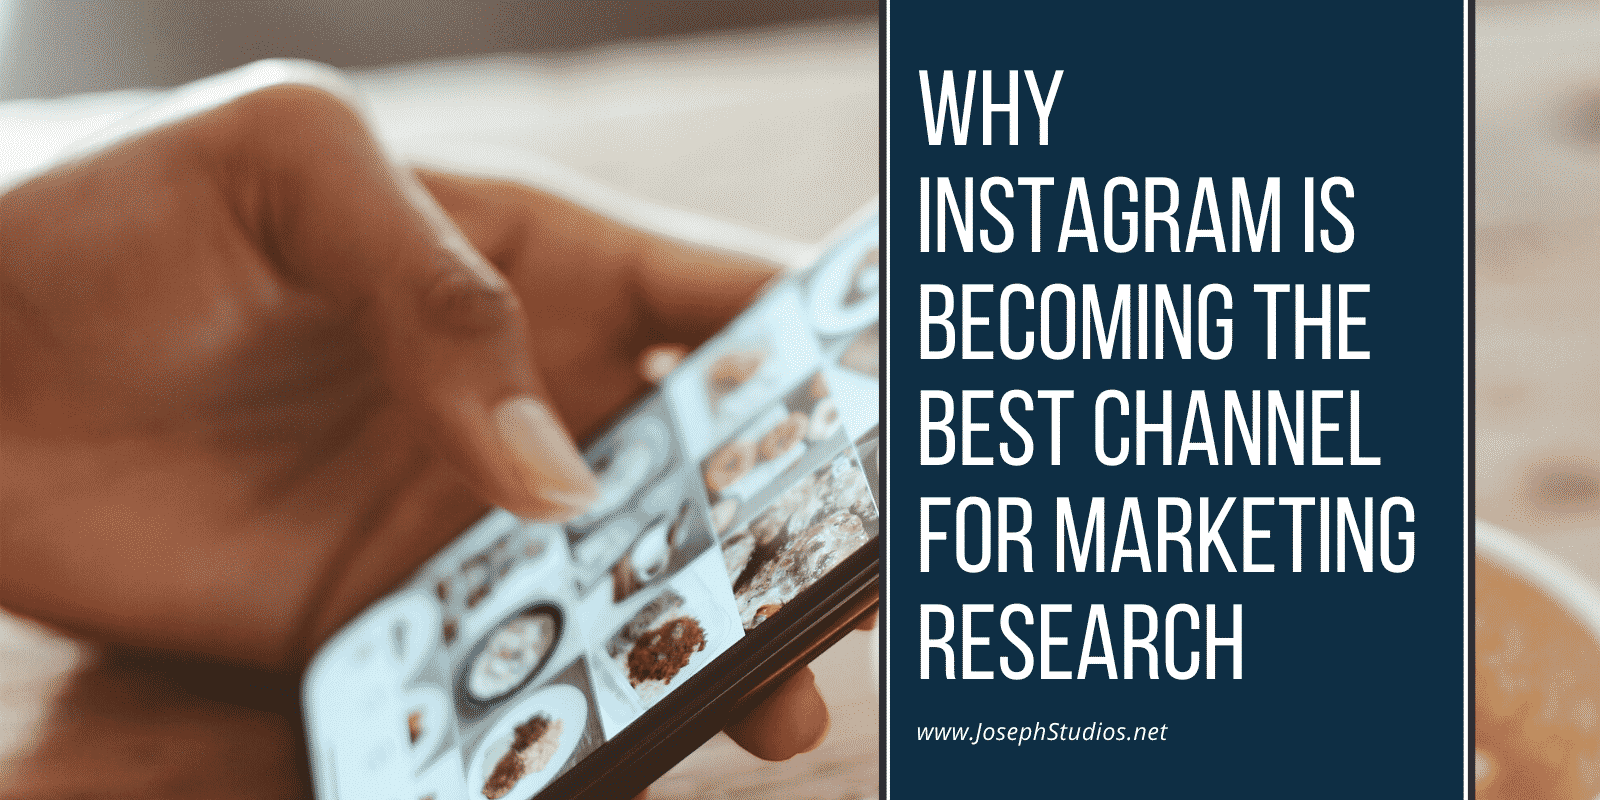 Why Instagram is Becoming the Best Channel for Organic Marketing, Why Instagram is Becoming the Best Channel for Organic Marketing